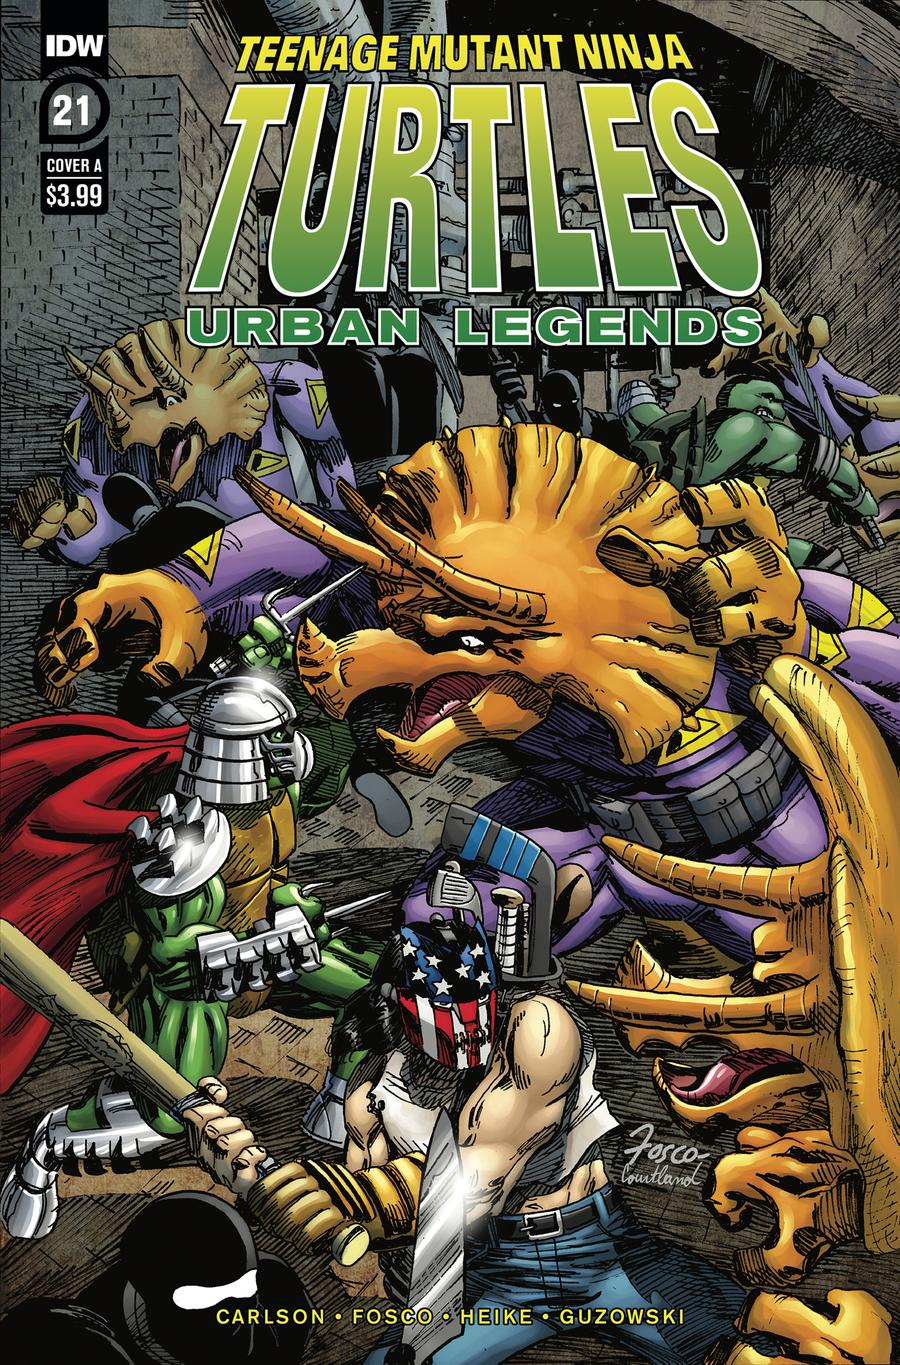 Teenage Mutant Ninja Turtles Urban Legends #21 Cover A Regular Frank Fosco Cover